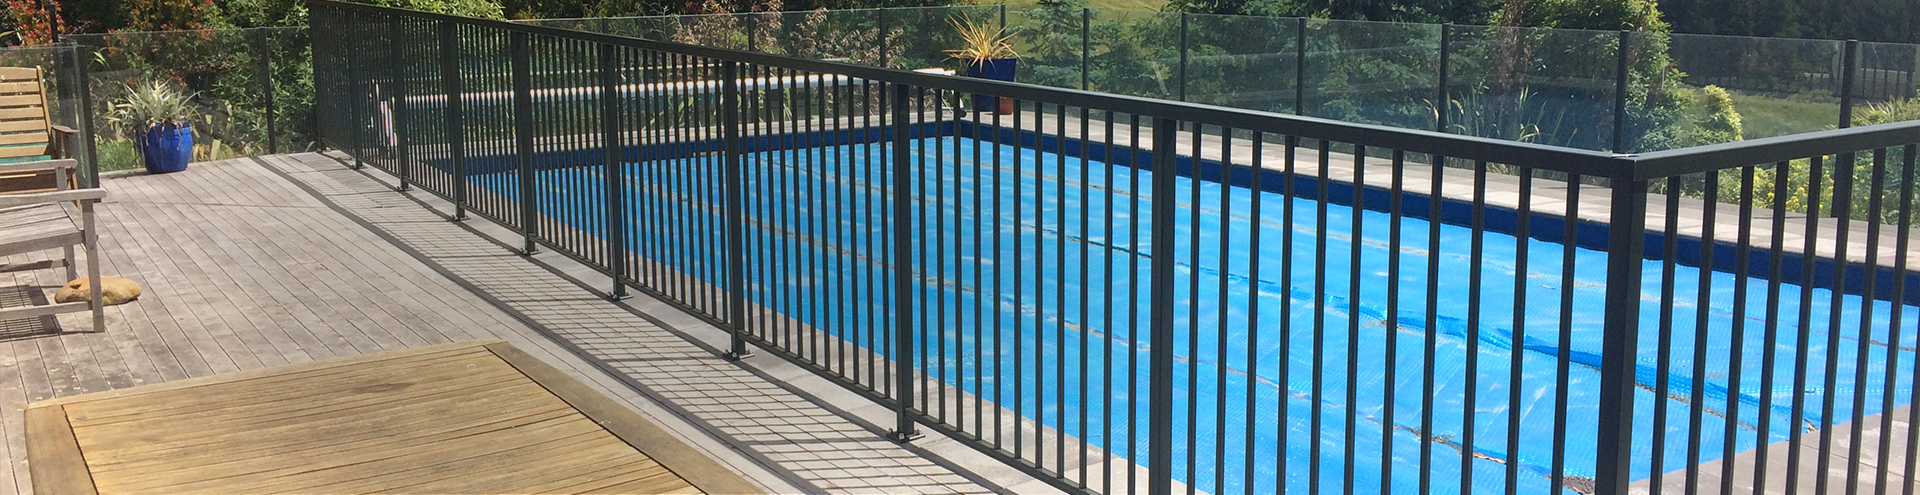 Pool and Boundary fences